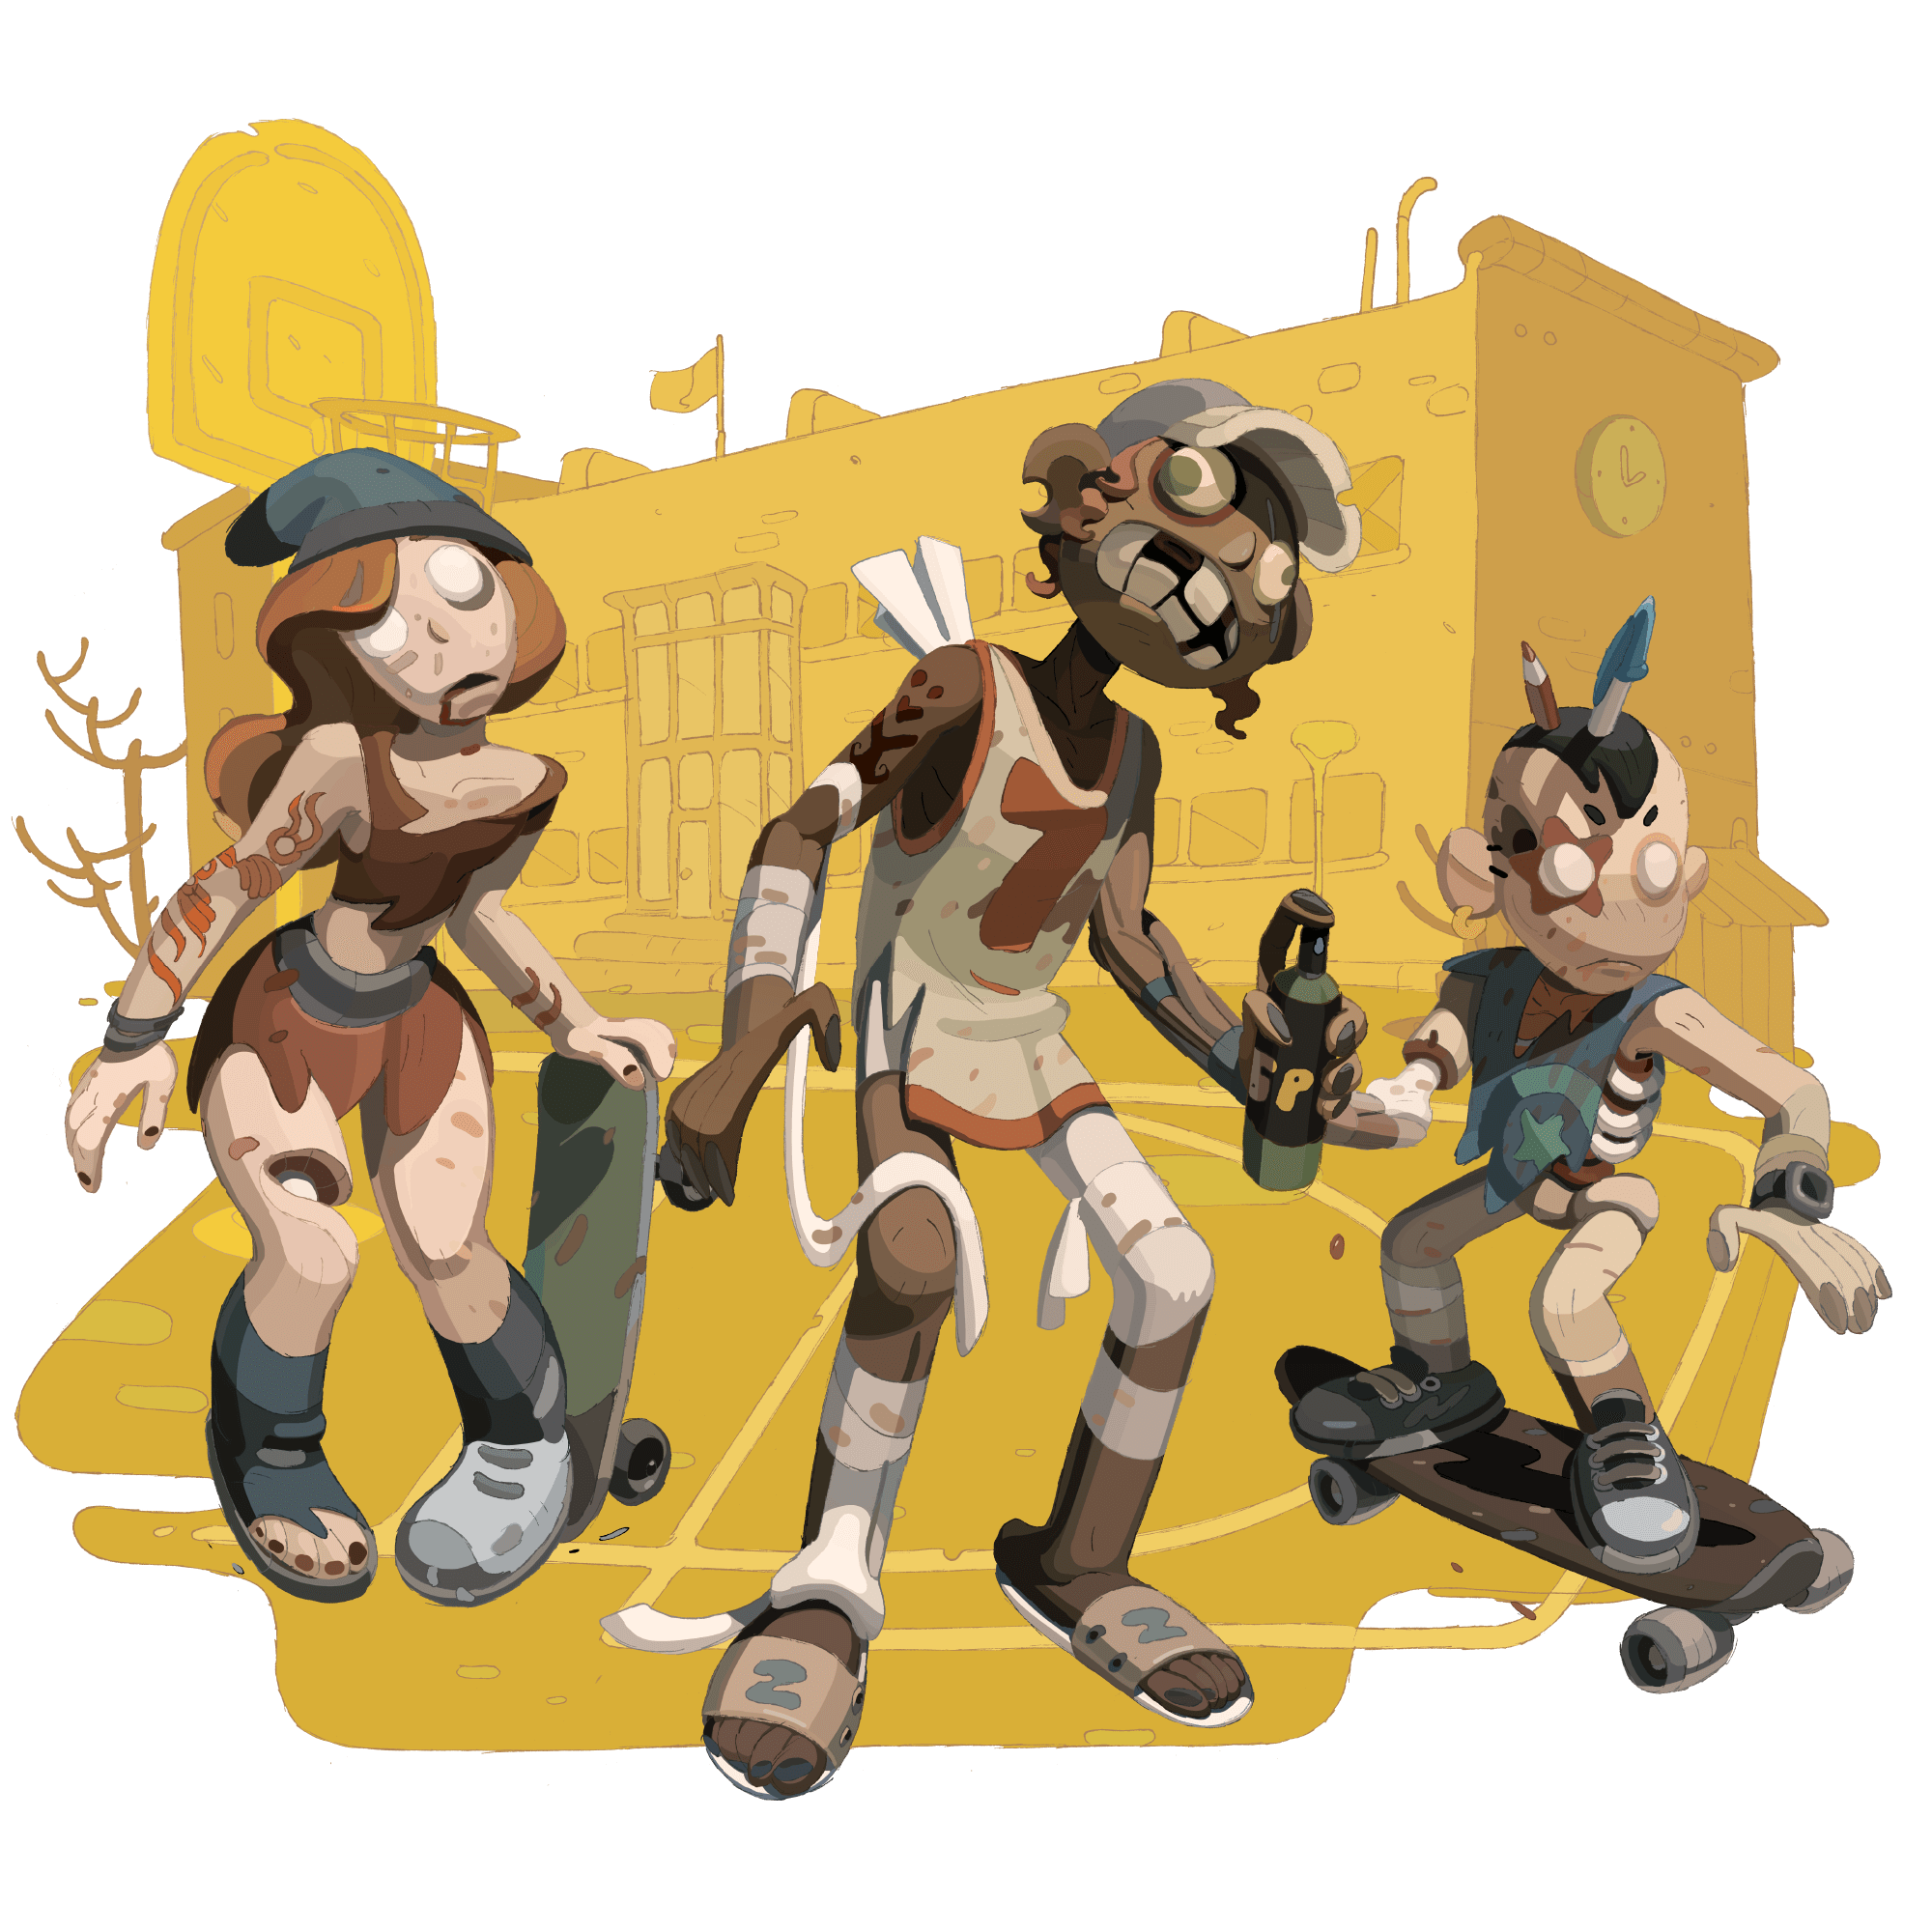 Three stylized zombies standing in front of an abstract school background.